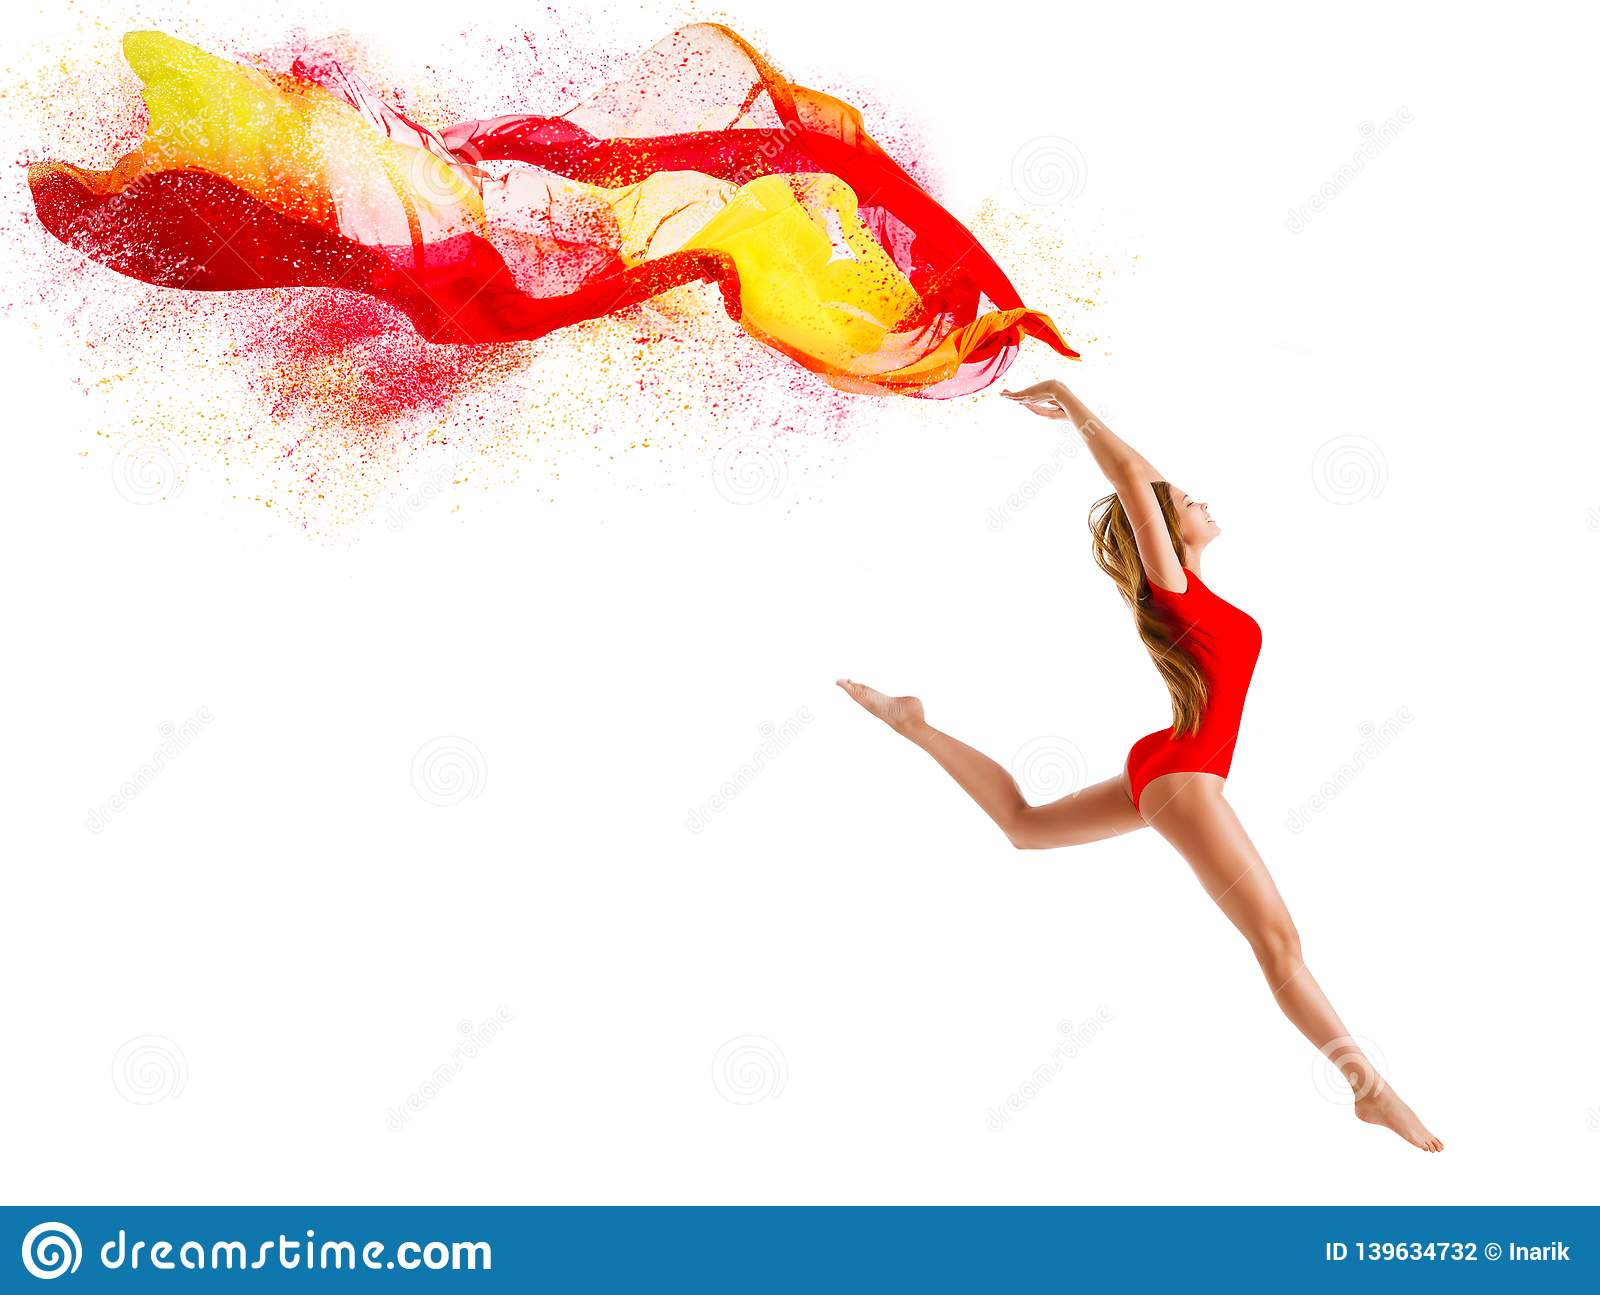 Sport Woman Jumping with Flying Cloth, Happy Gymnast Girl with Fluttering Fabric, Gymnastics